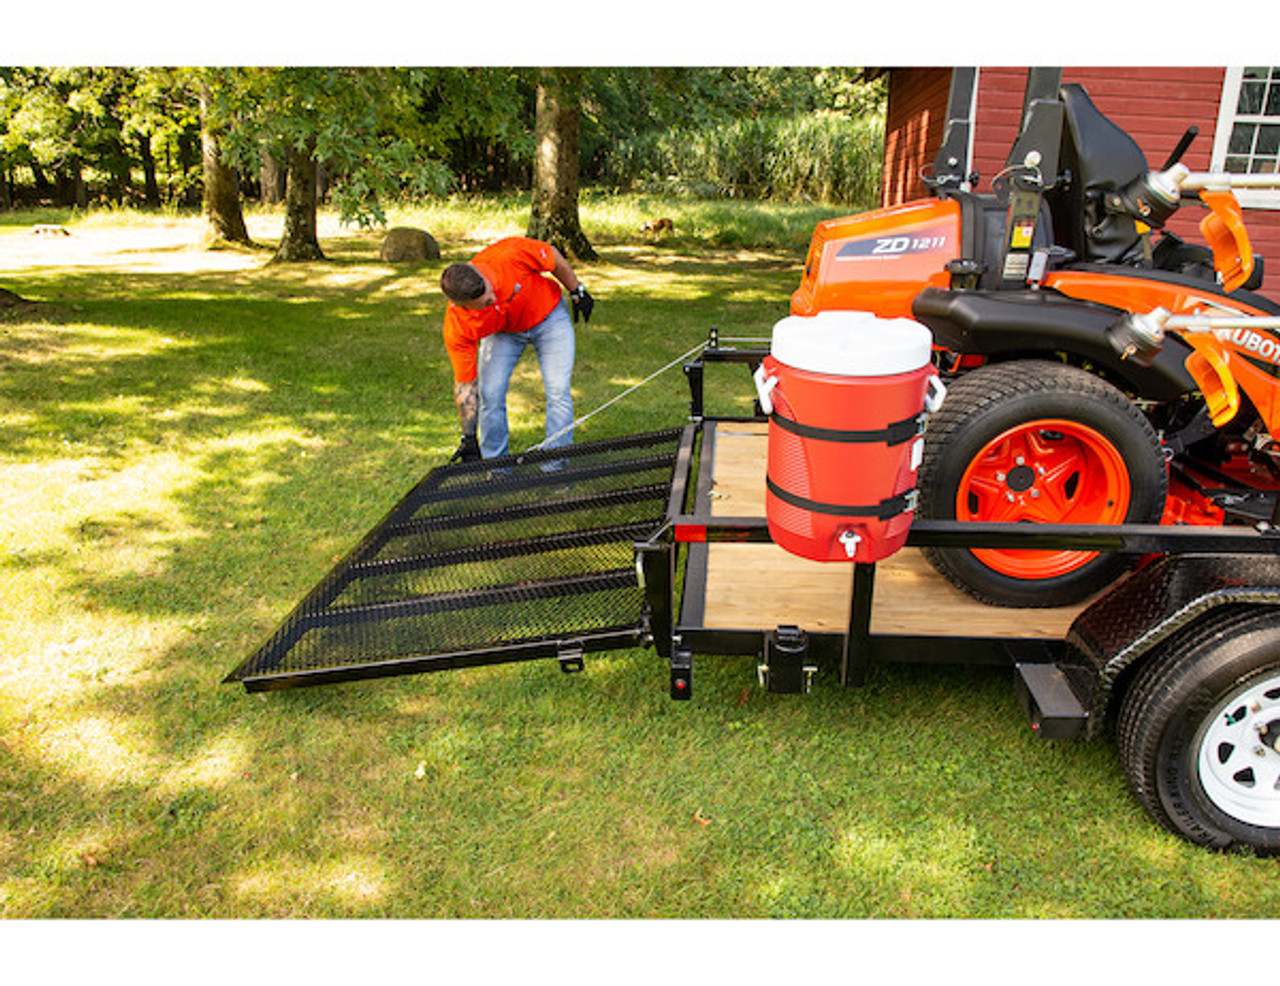 Buyers 5201000 EZ Gate™ Tailgate Assist for Landscaping Trailers and Open Style Trailers Picture # 8